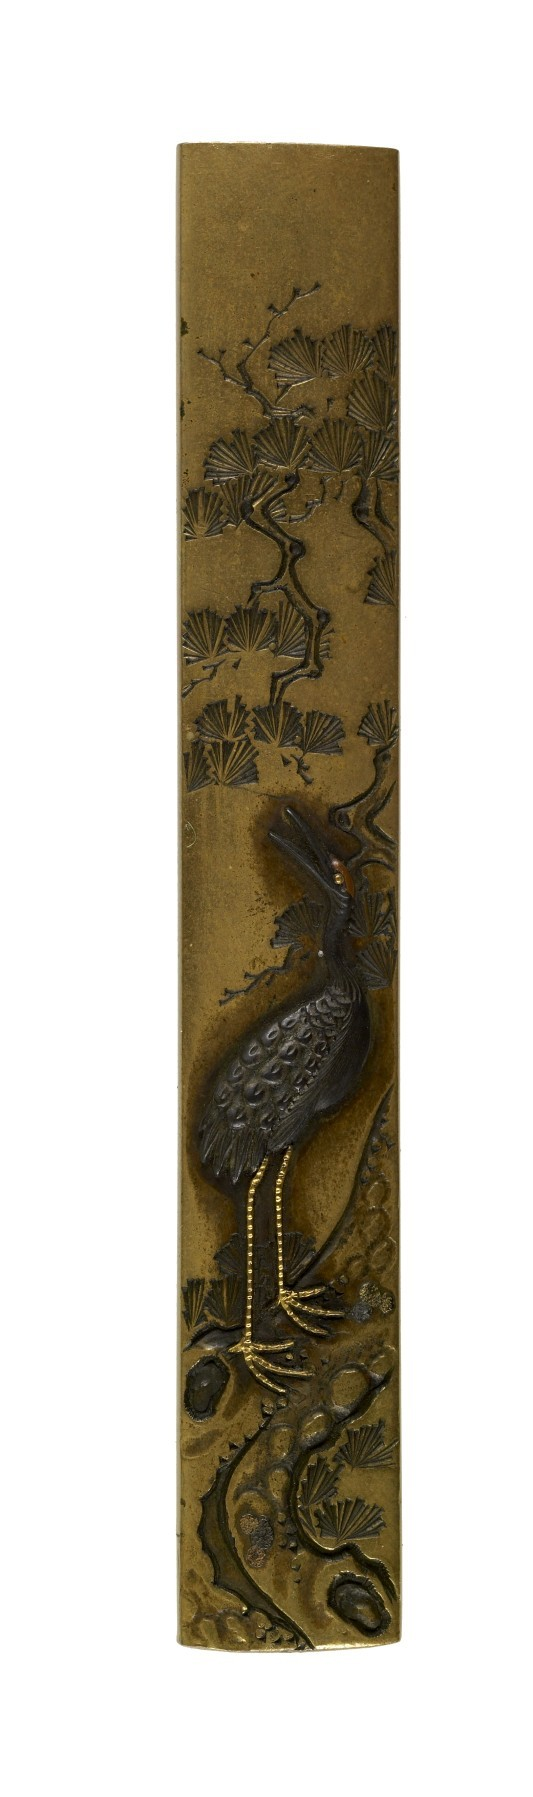 Kozuka with a Crane and Pine